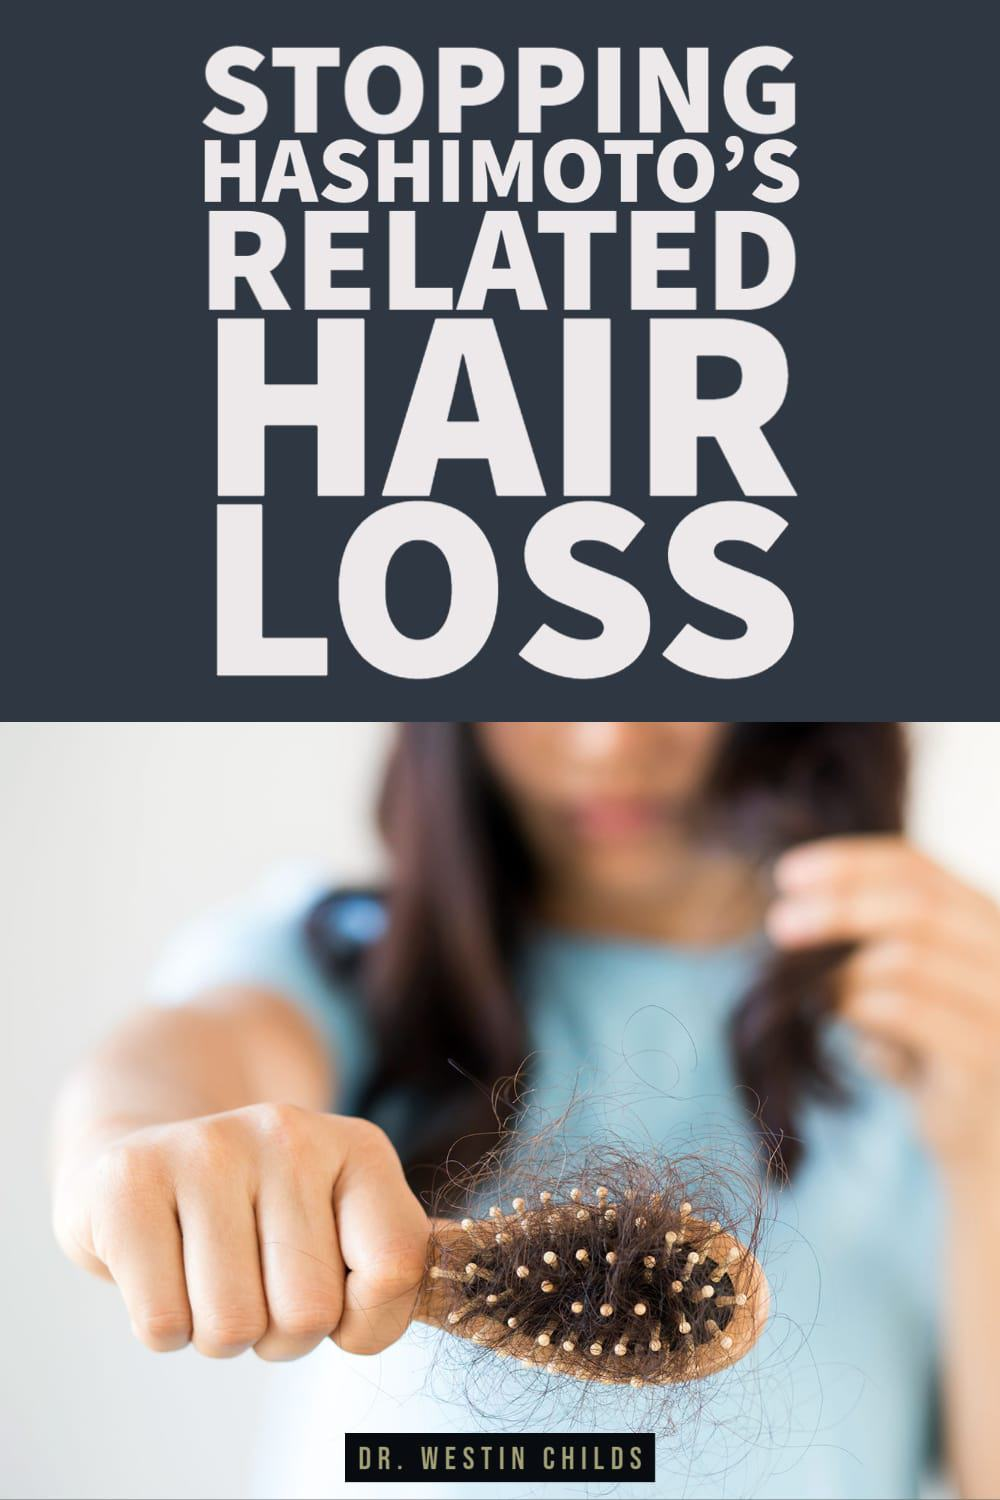 how to stop hashimoto's related hair loss